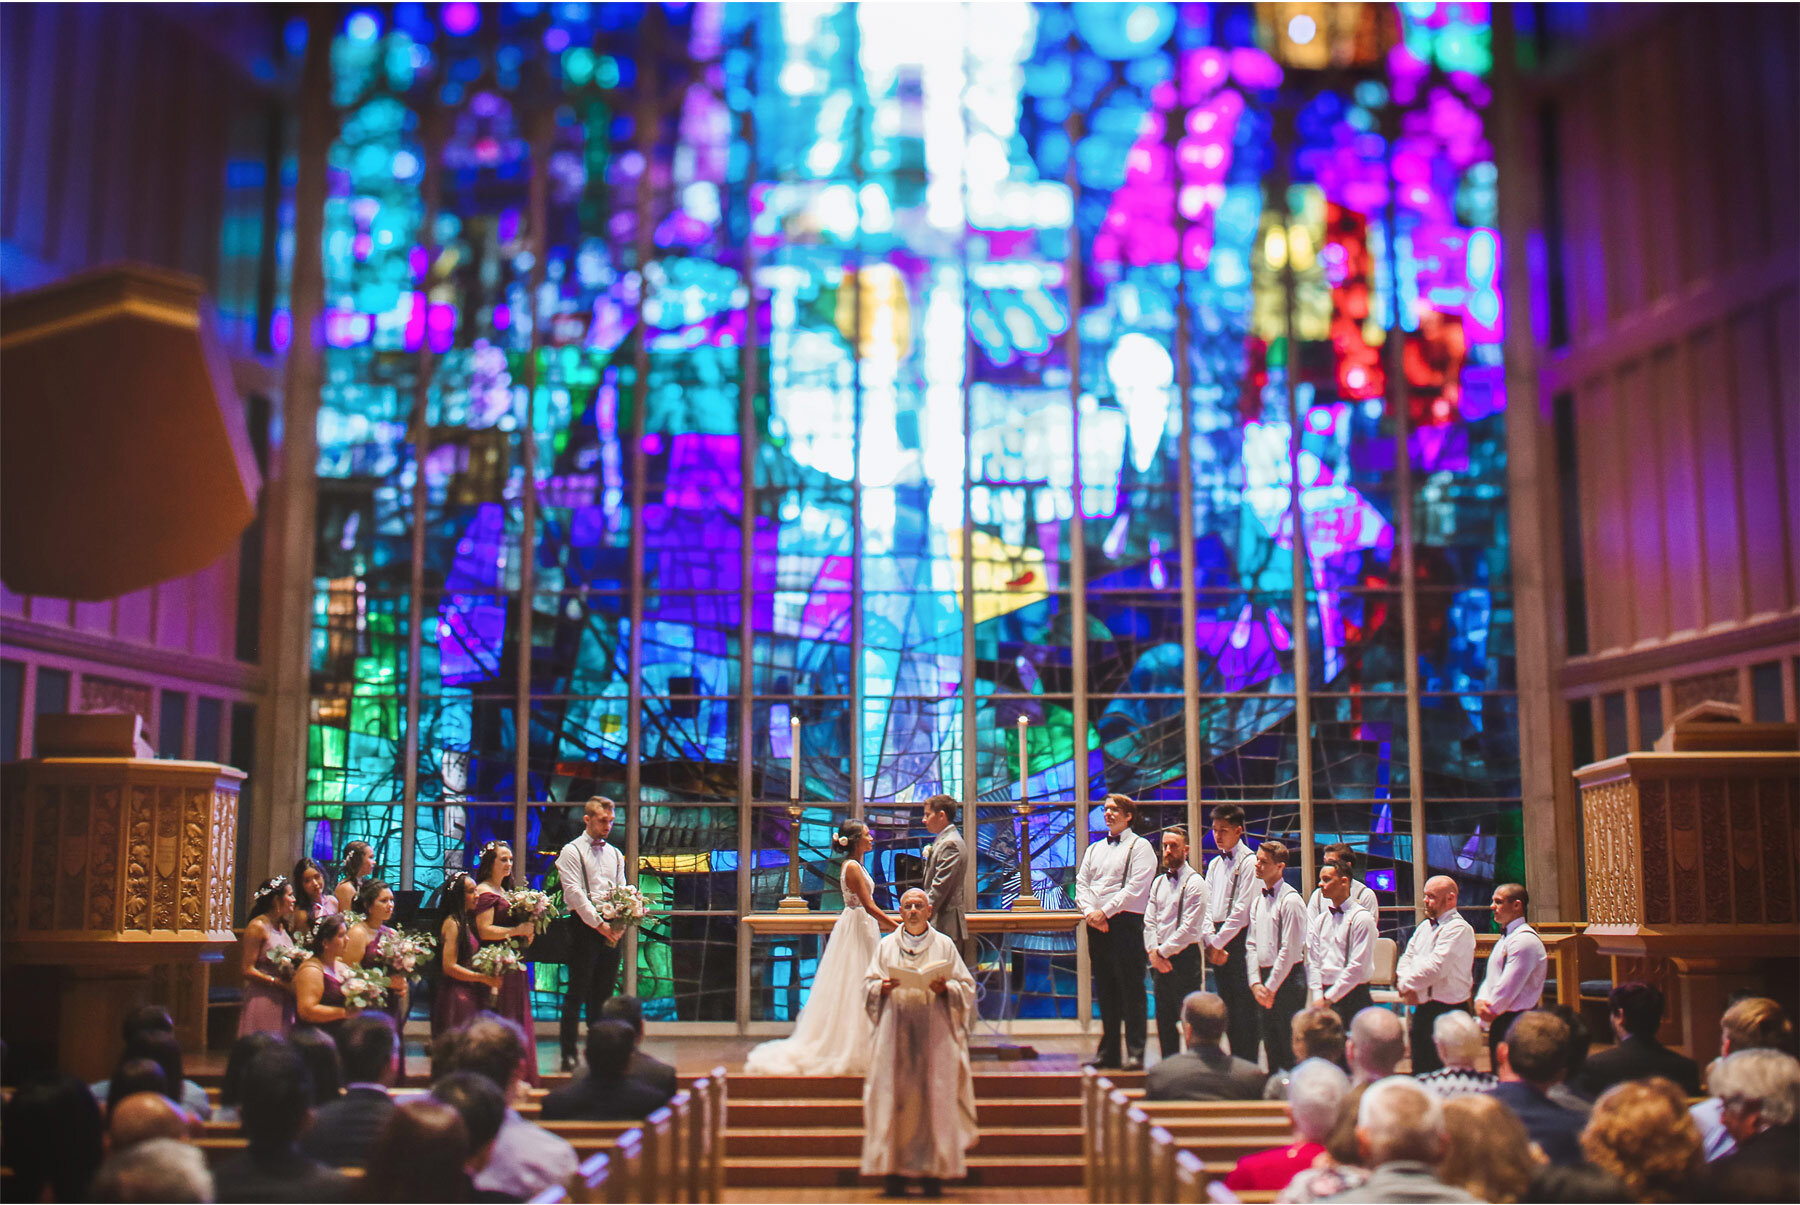 17-Wedding-by-Andrew-Vick-Photography-Chicago-Illinois-Alice-Millar-Chapel-Groom-Bride-Stained-Glass-Ceremony-Ashley-and-Nicholas.jpg